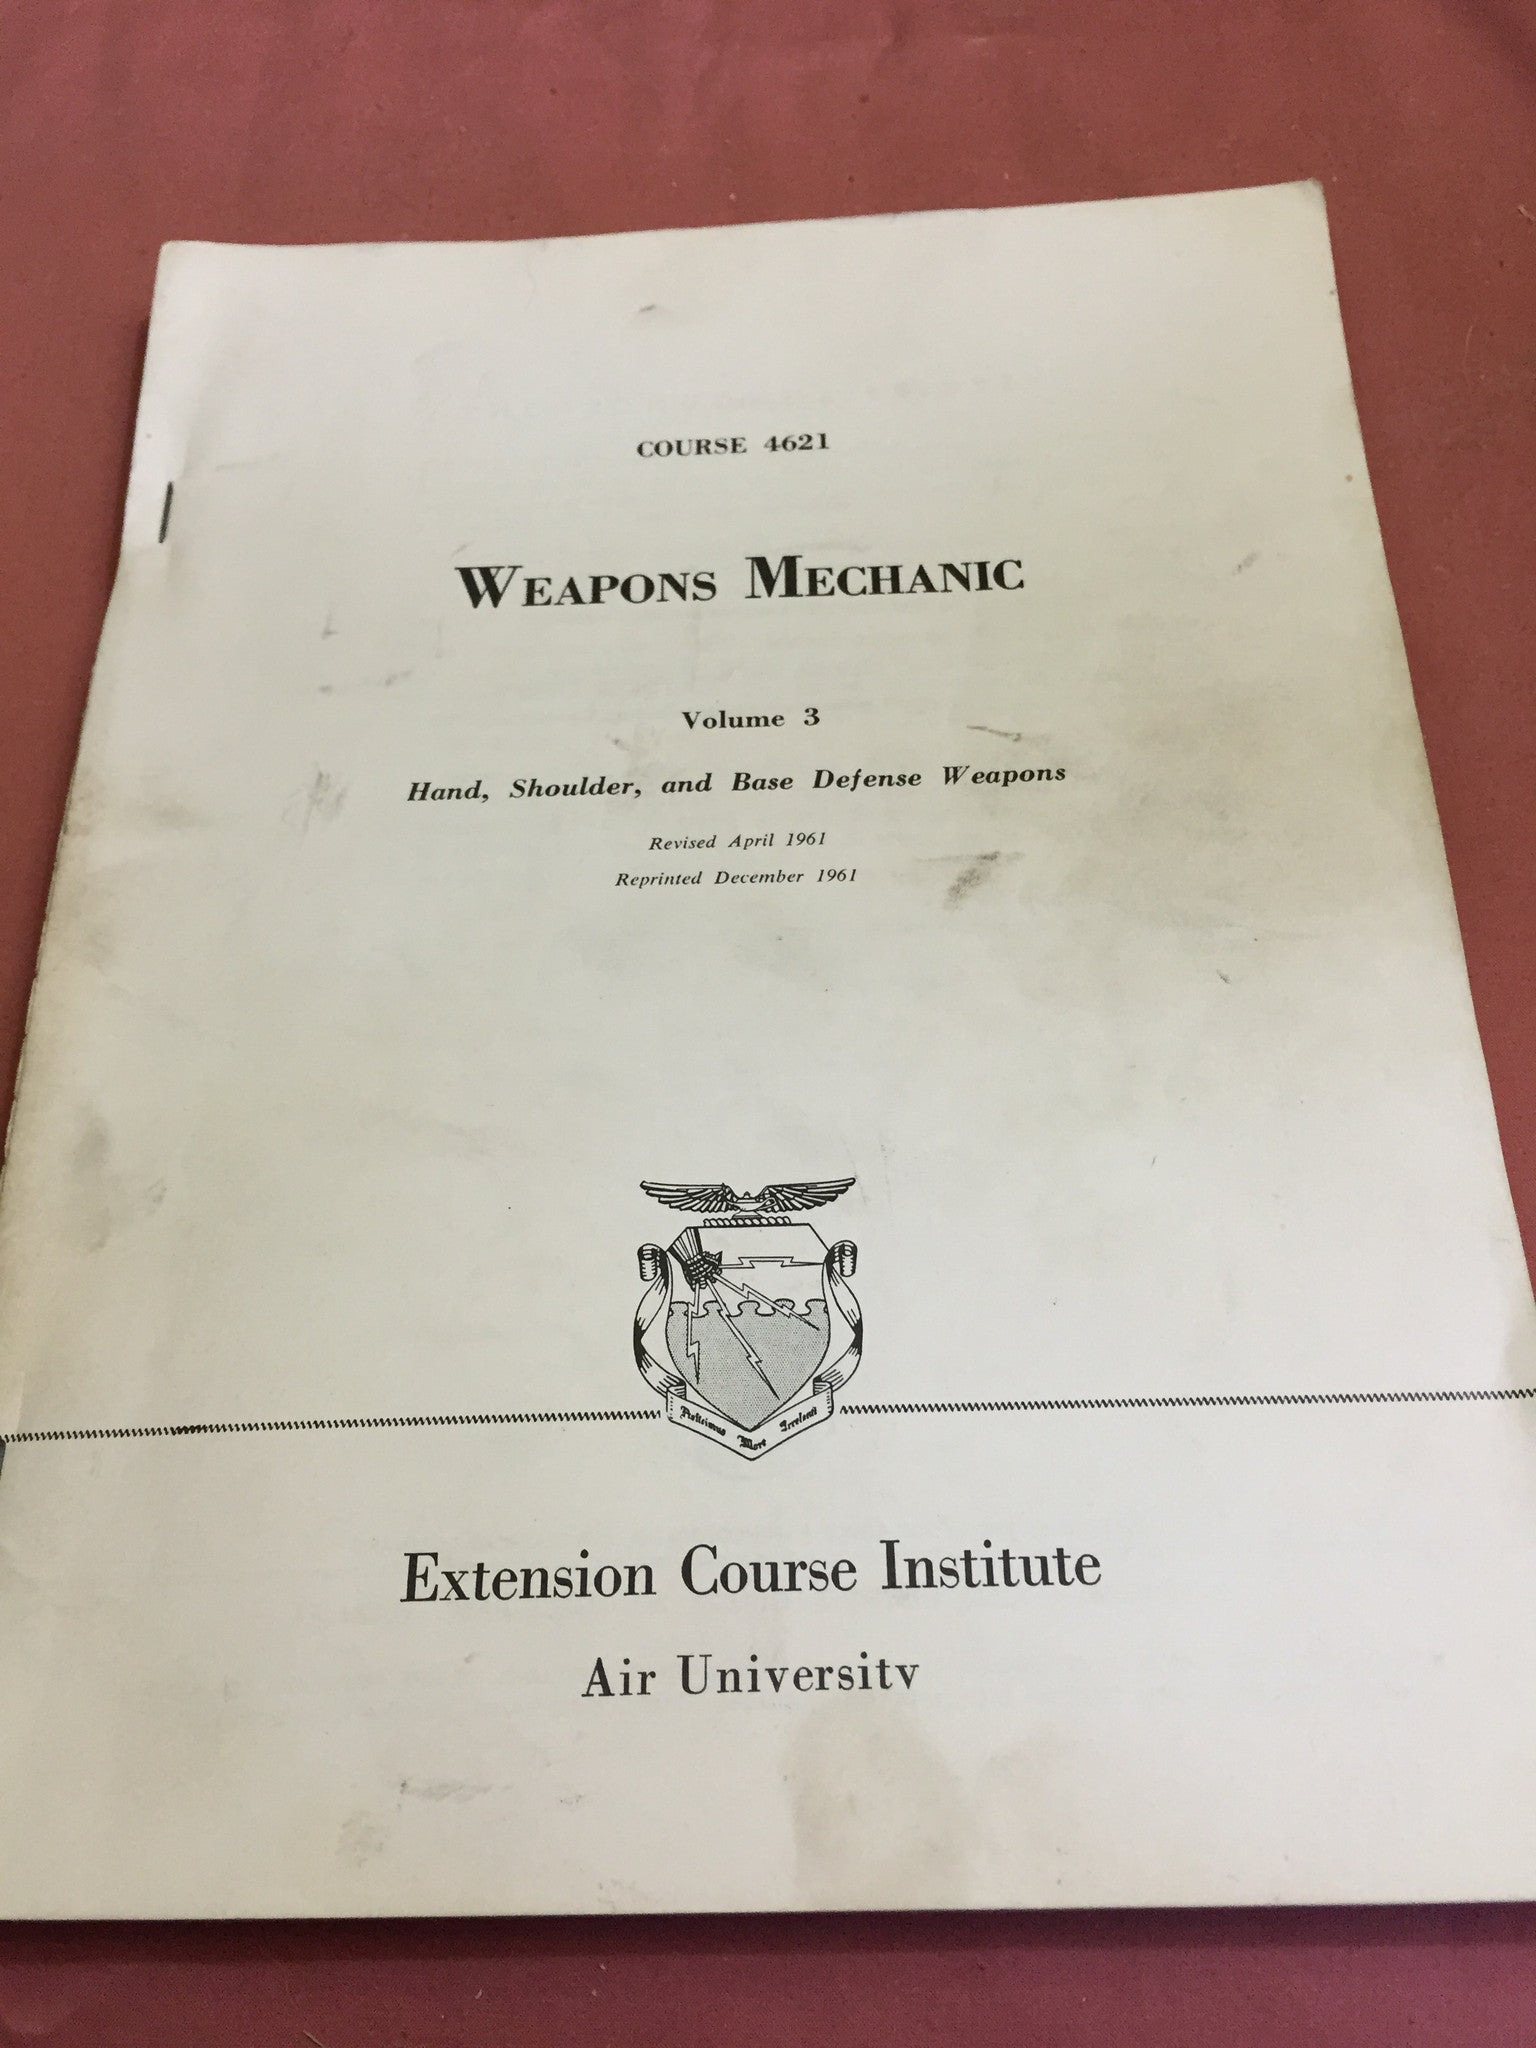 USAF Weapons Mechanic manual